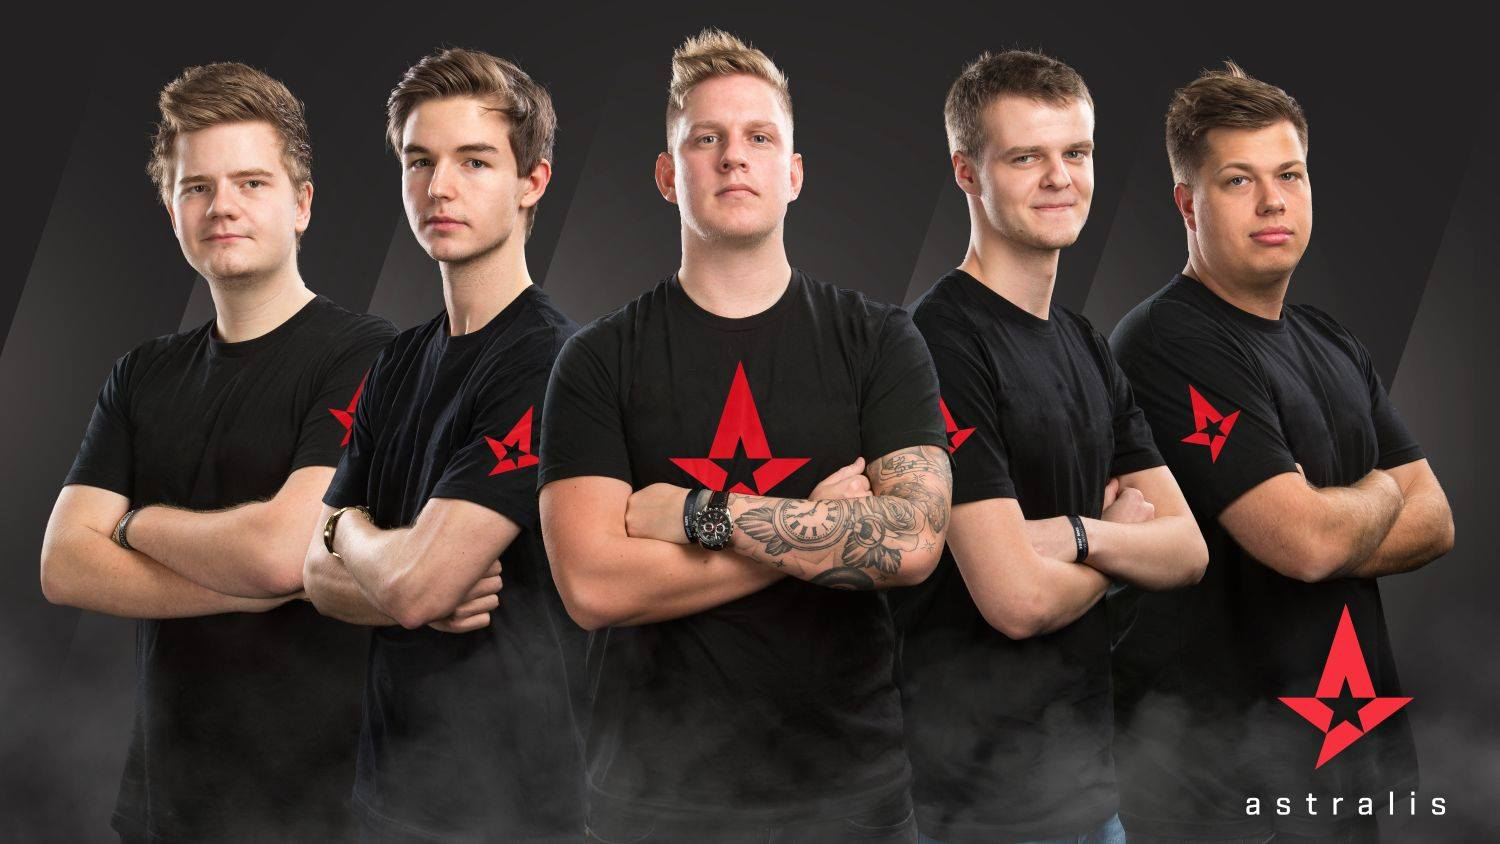 Call Of Duty 3d Wallpaper Team Questionmark W Własnej Organizacji Astralis